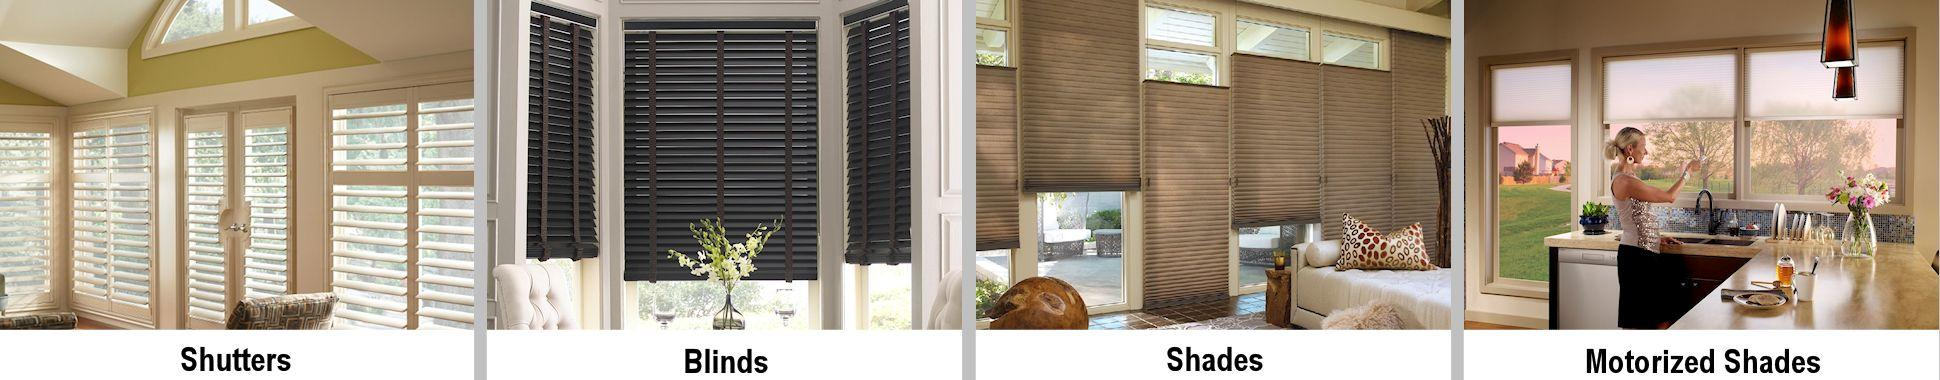 Shutters Blinds and Shades